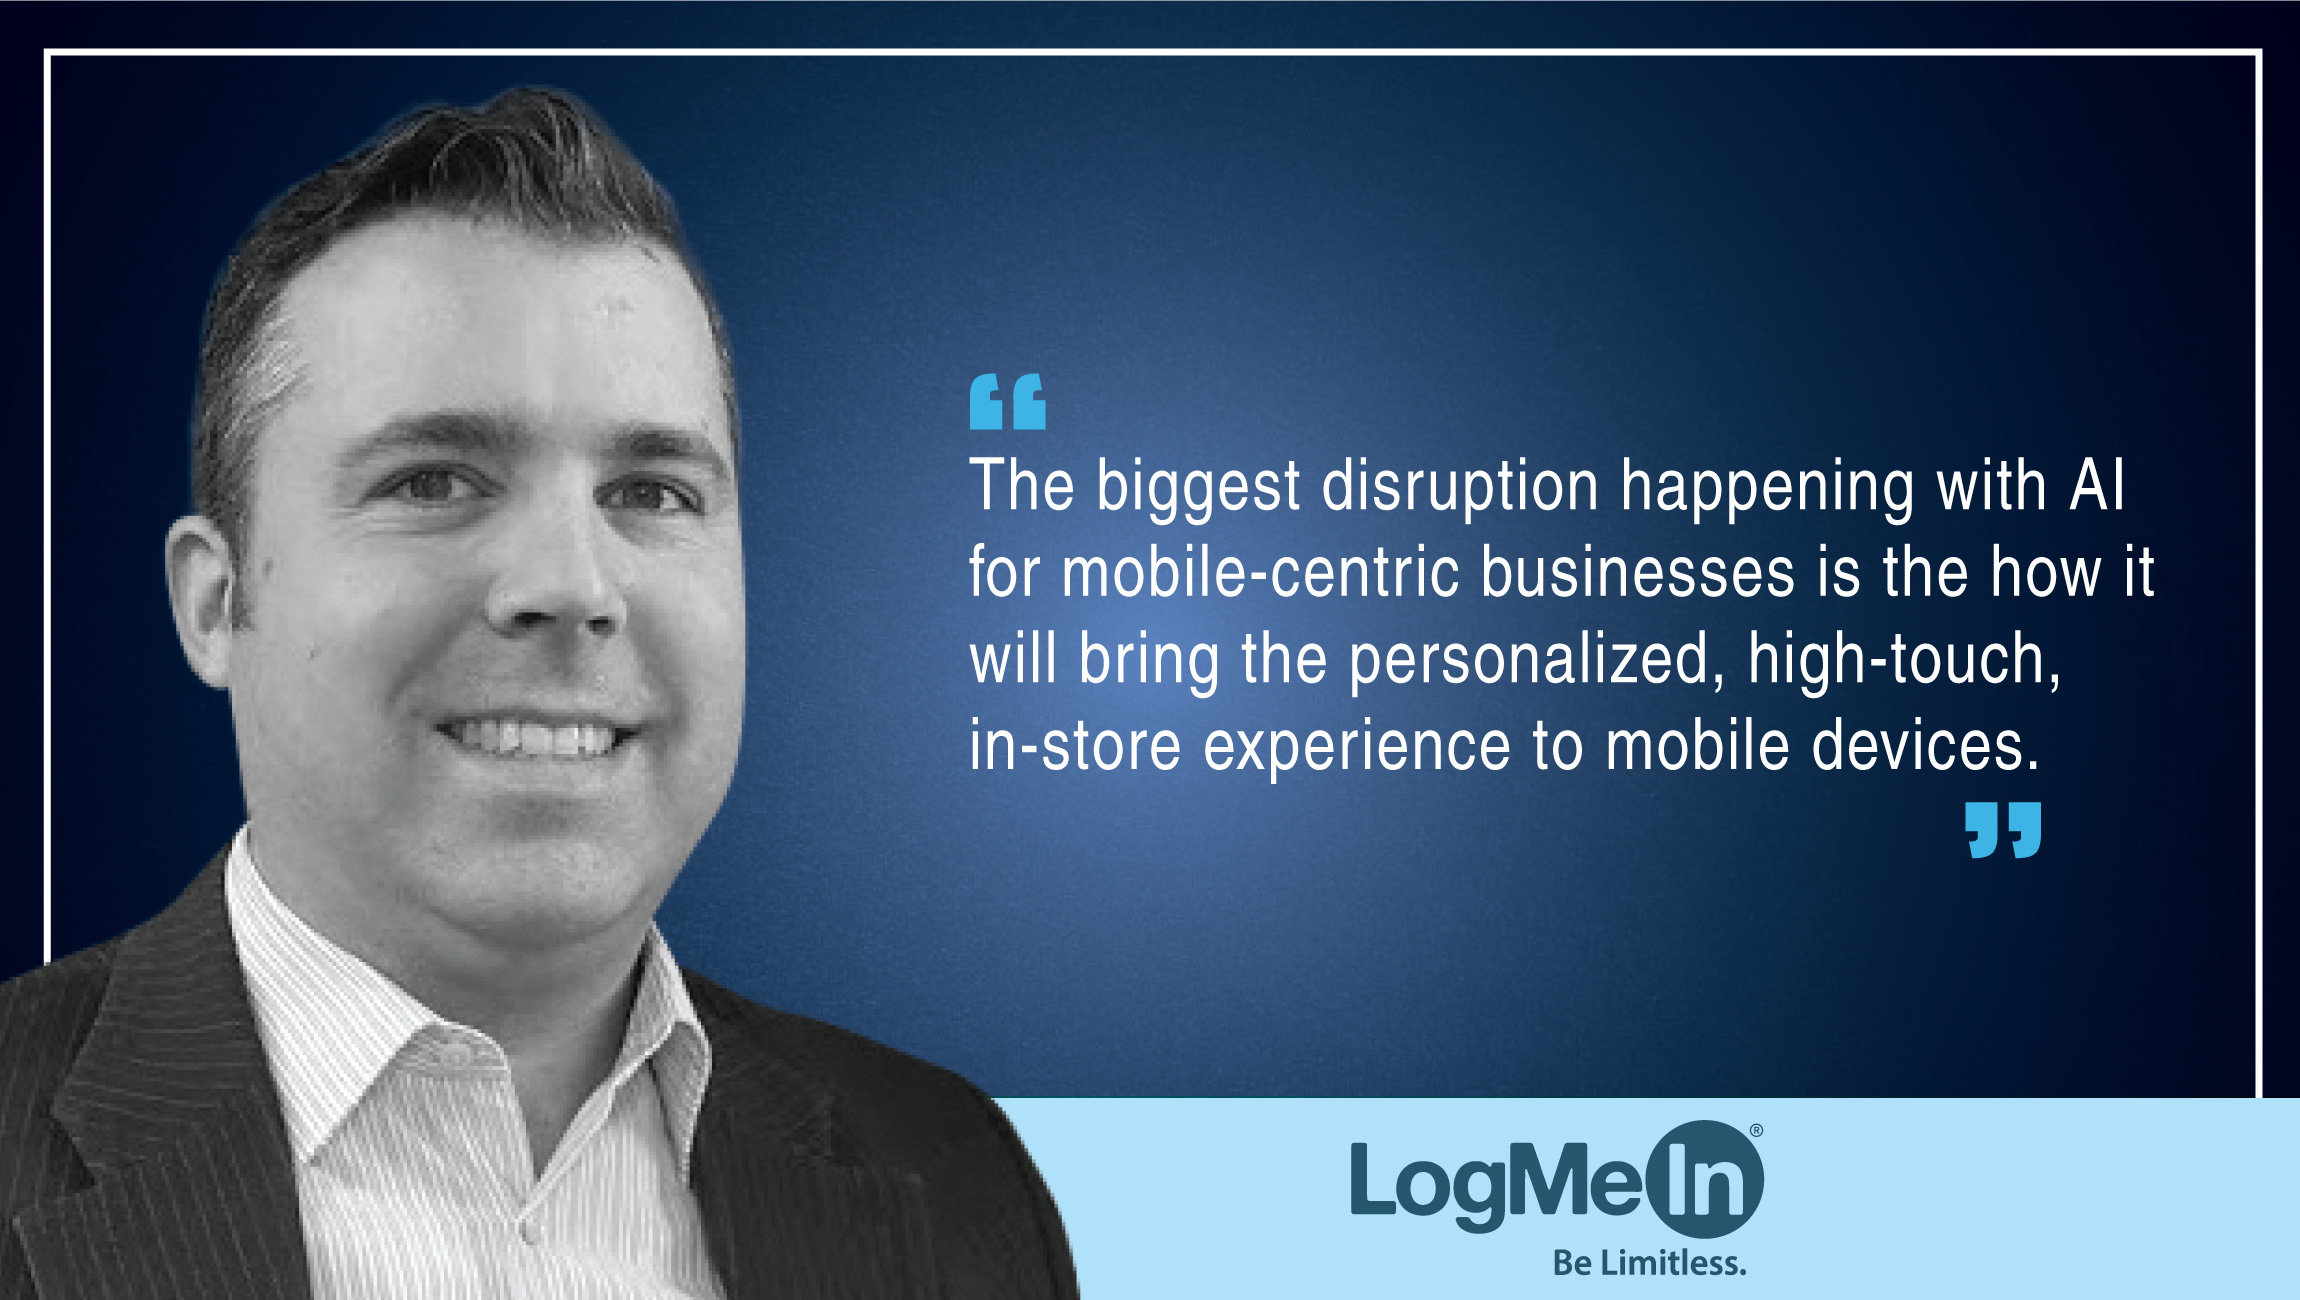 TechBytes with Ryan Lester, Senior Director of Customer Engagement Technologies at LogMeIn